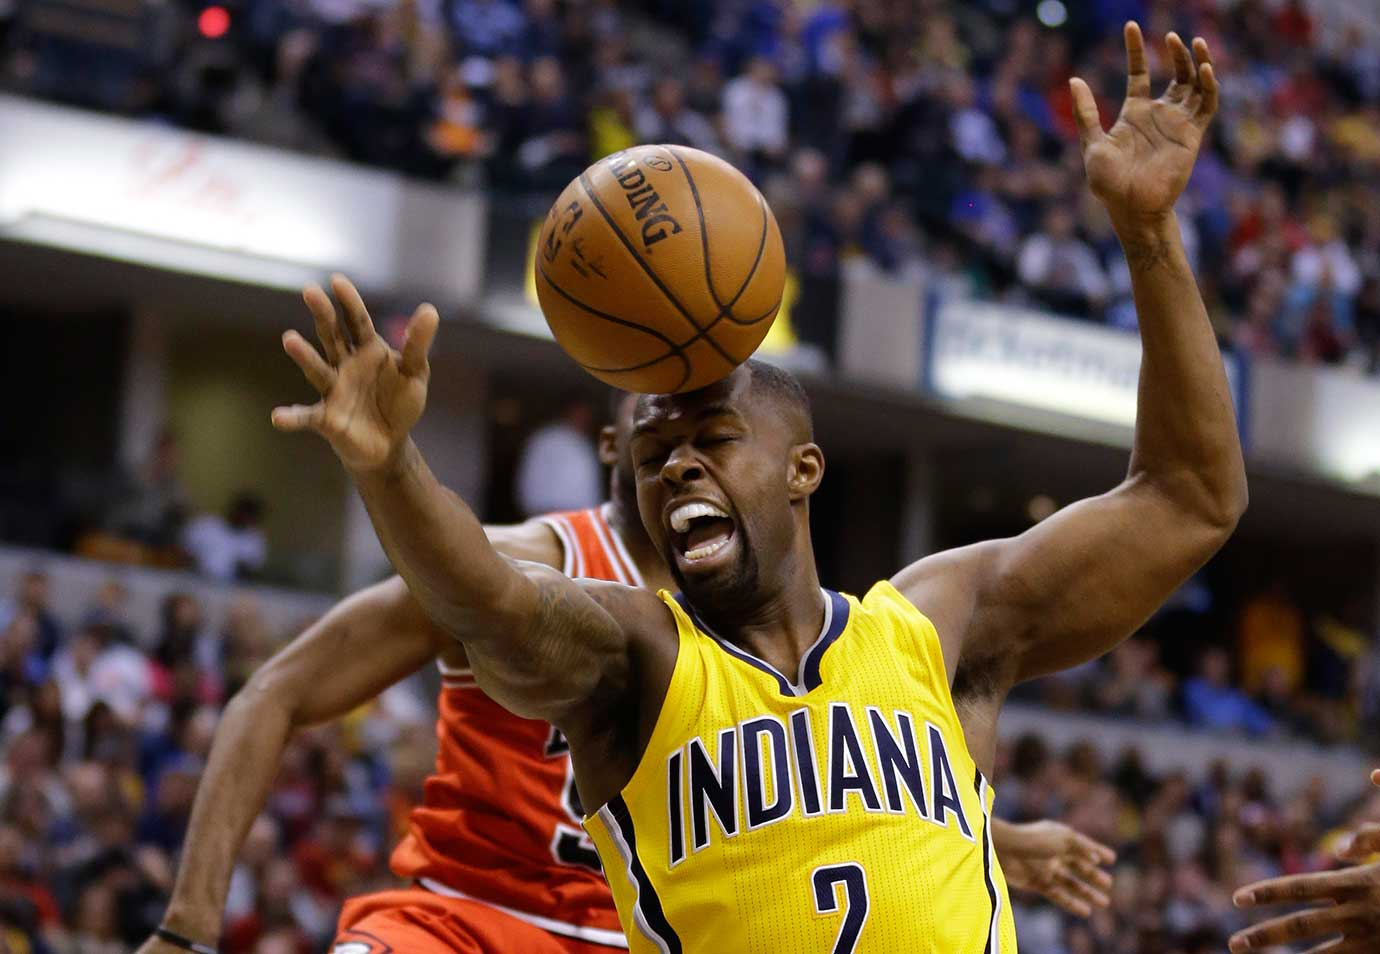 Indiana Pacers guard Rodney Stuckey loses the ball off the top of his head after being blocked by E'Twaun Moore, rear, of Chicago.